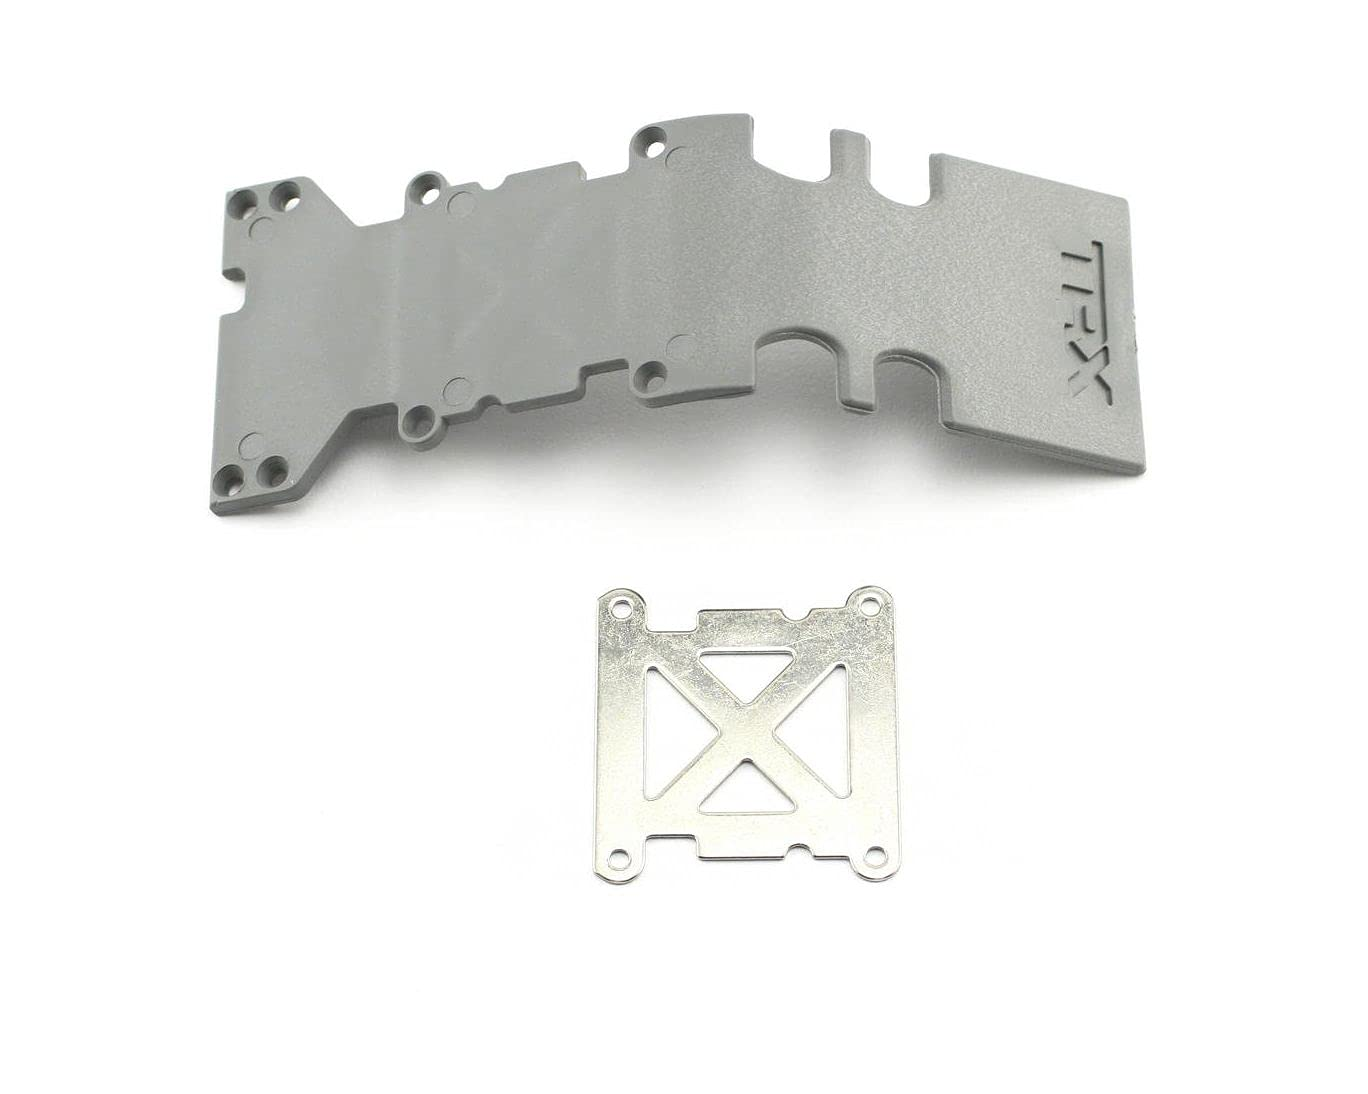 TRAXXAS4938A New arrival TRA4938A Rear Skidplatee Grey 3.3 T TR4938A Quantity limited TMX